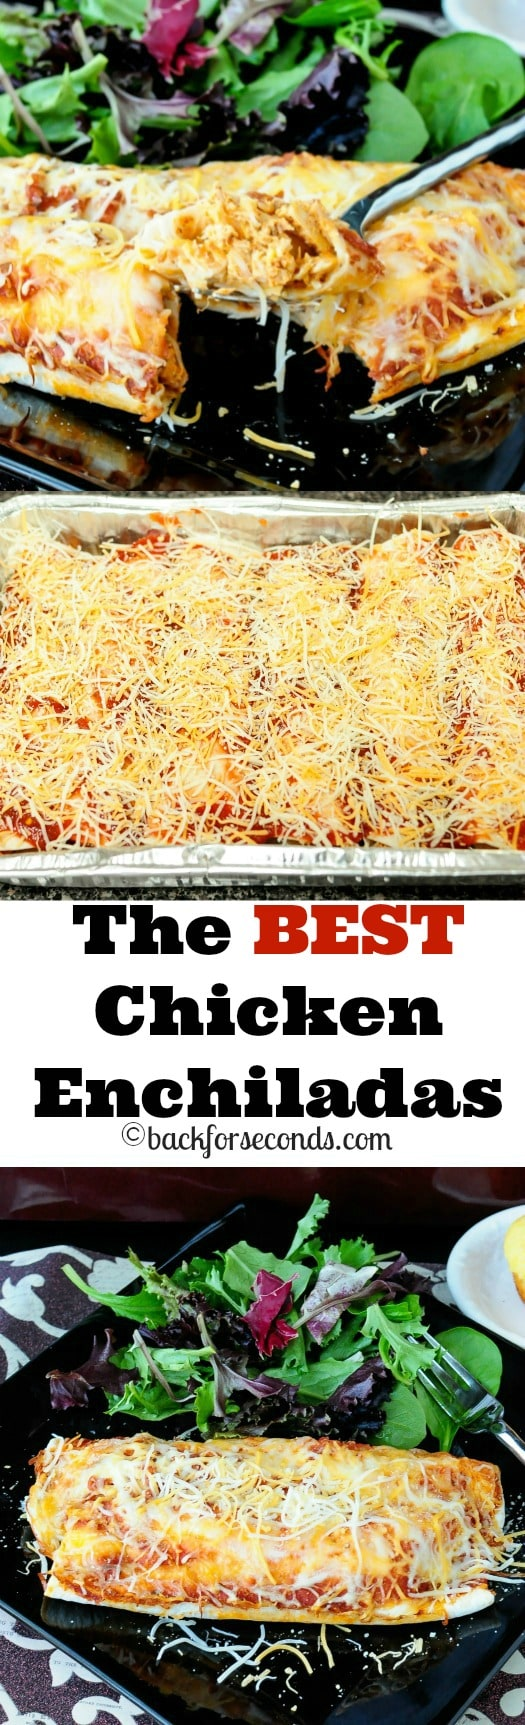 The BEST Chicken Enchiladas - creamy, cheesy and a family favorite!